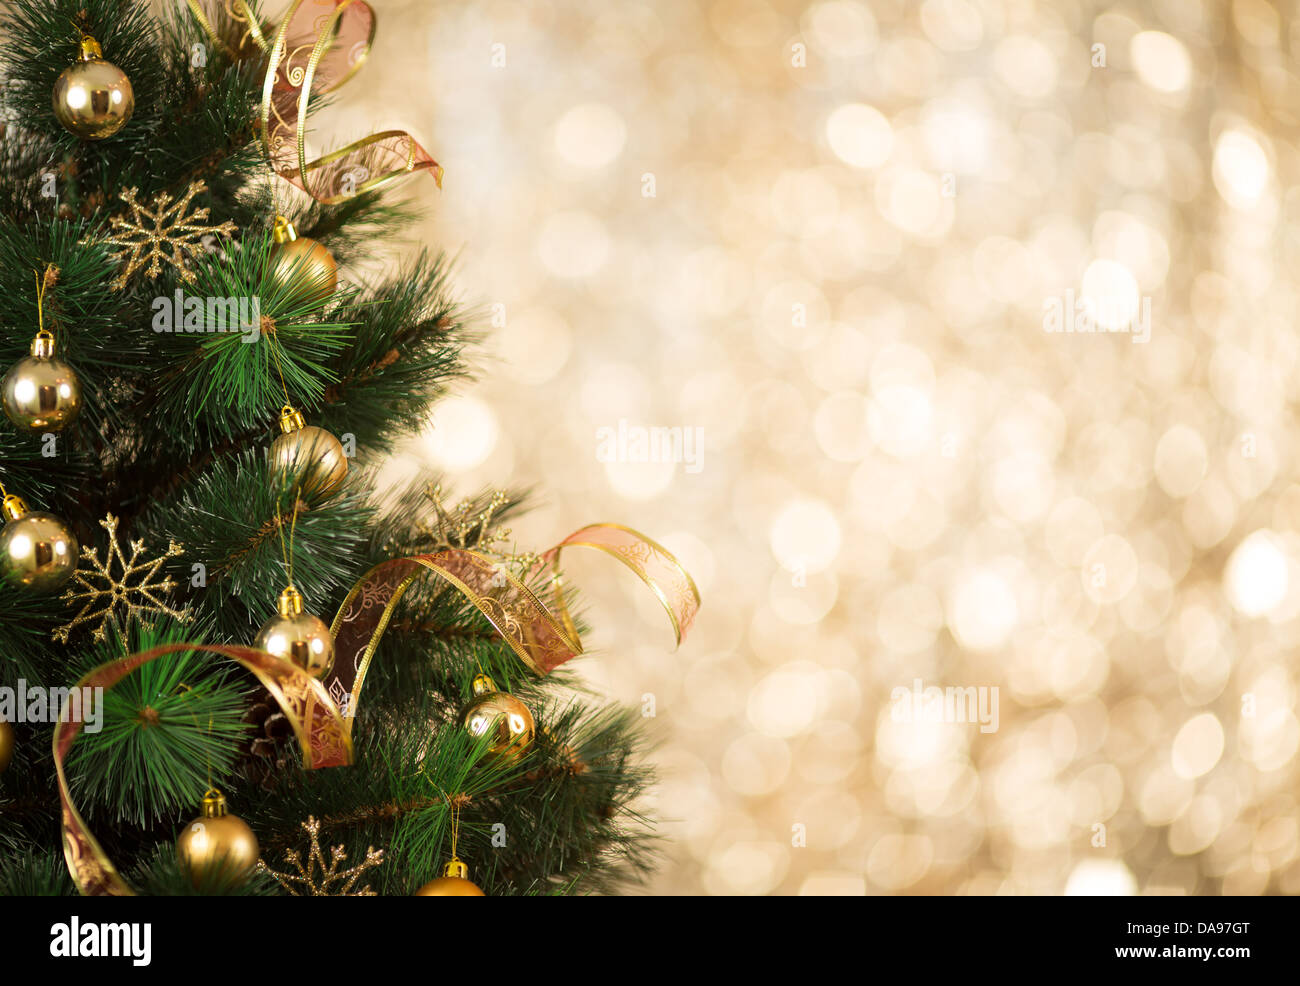 christmas background stock photos & christmas background stock